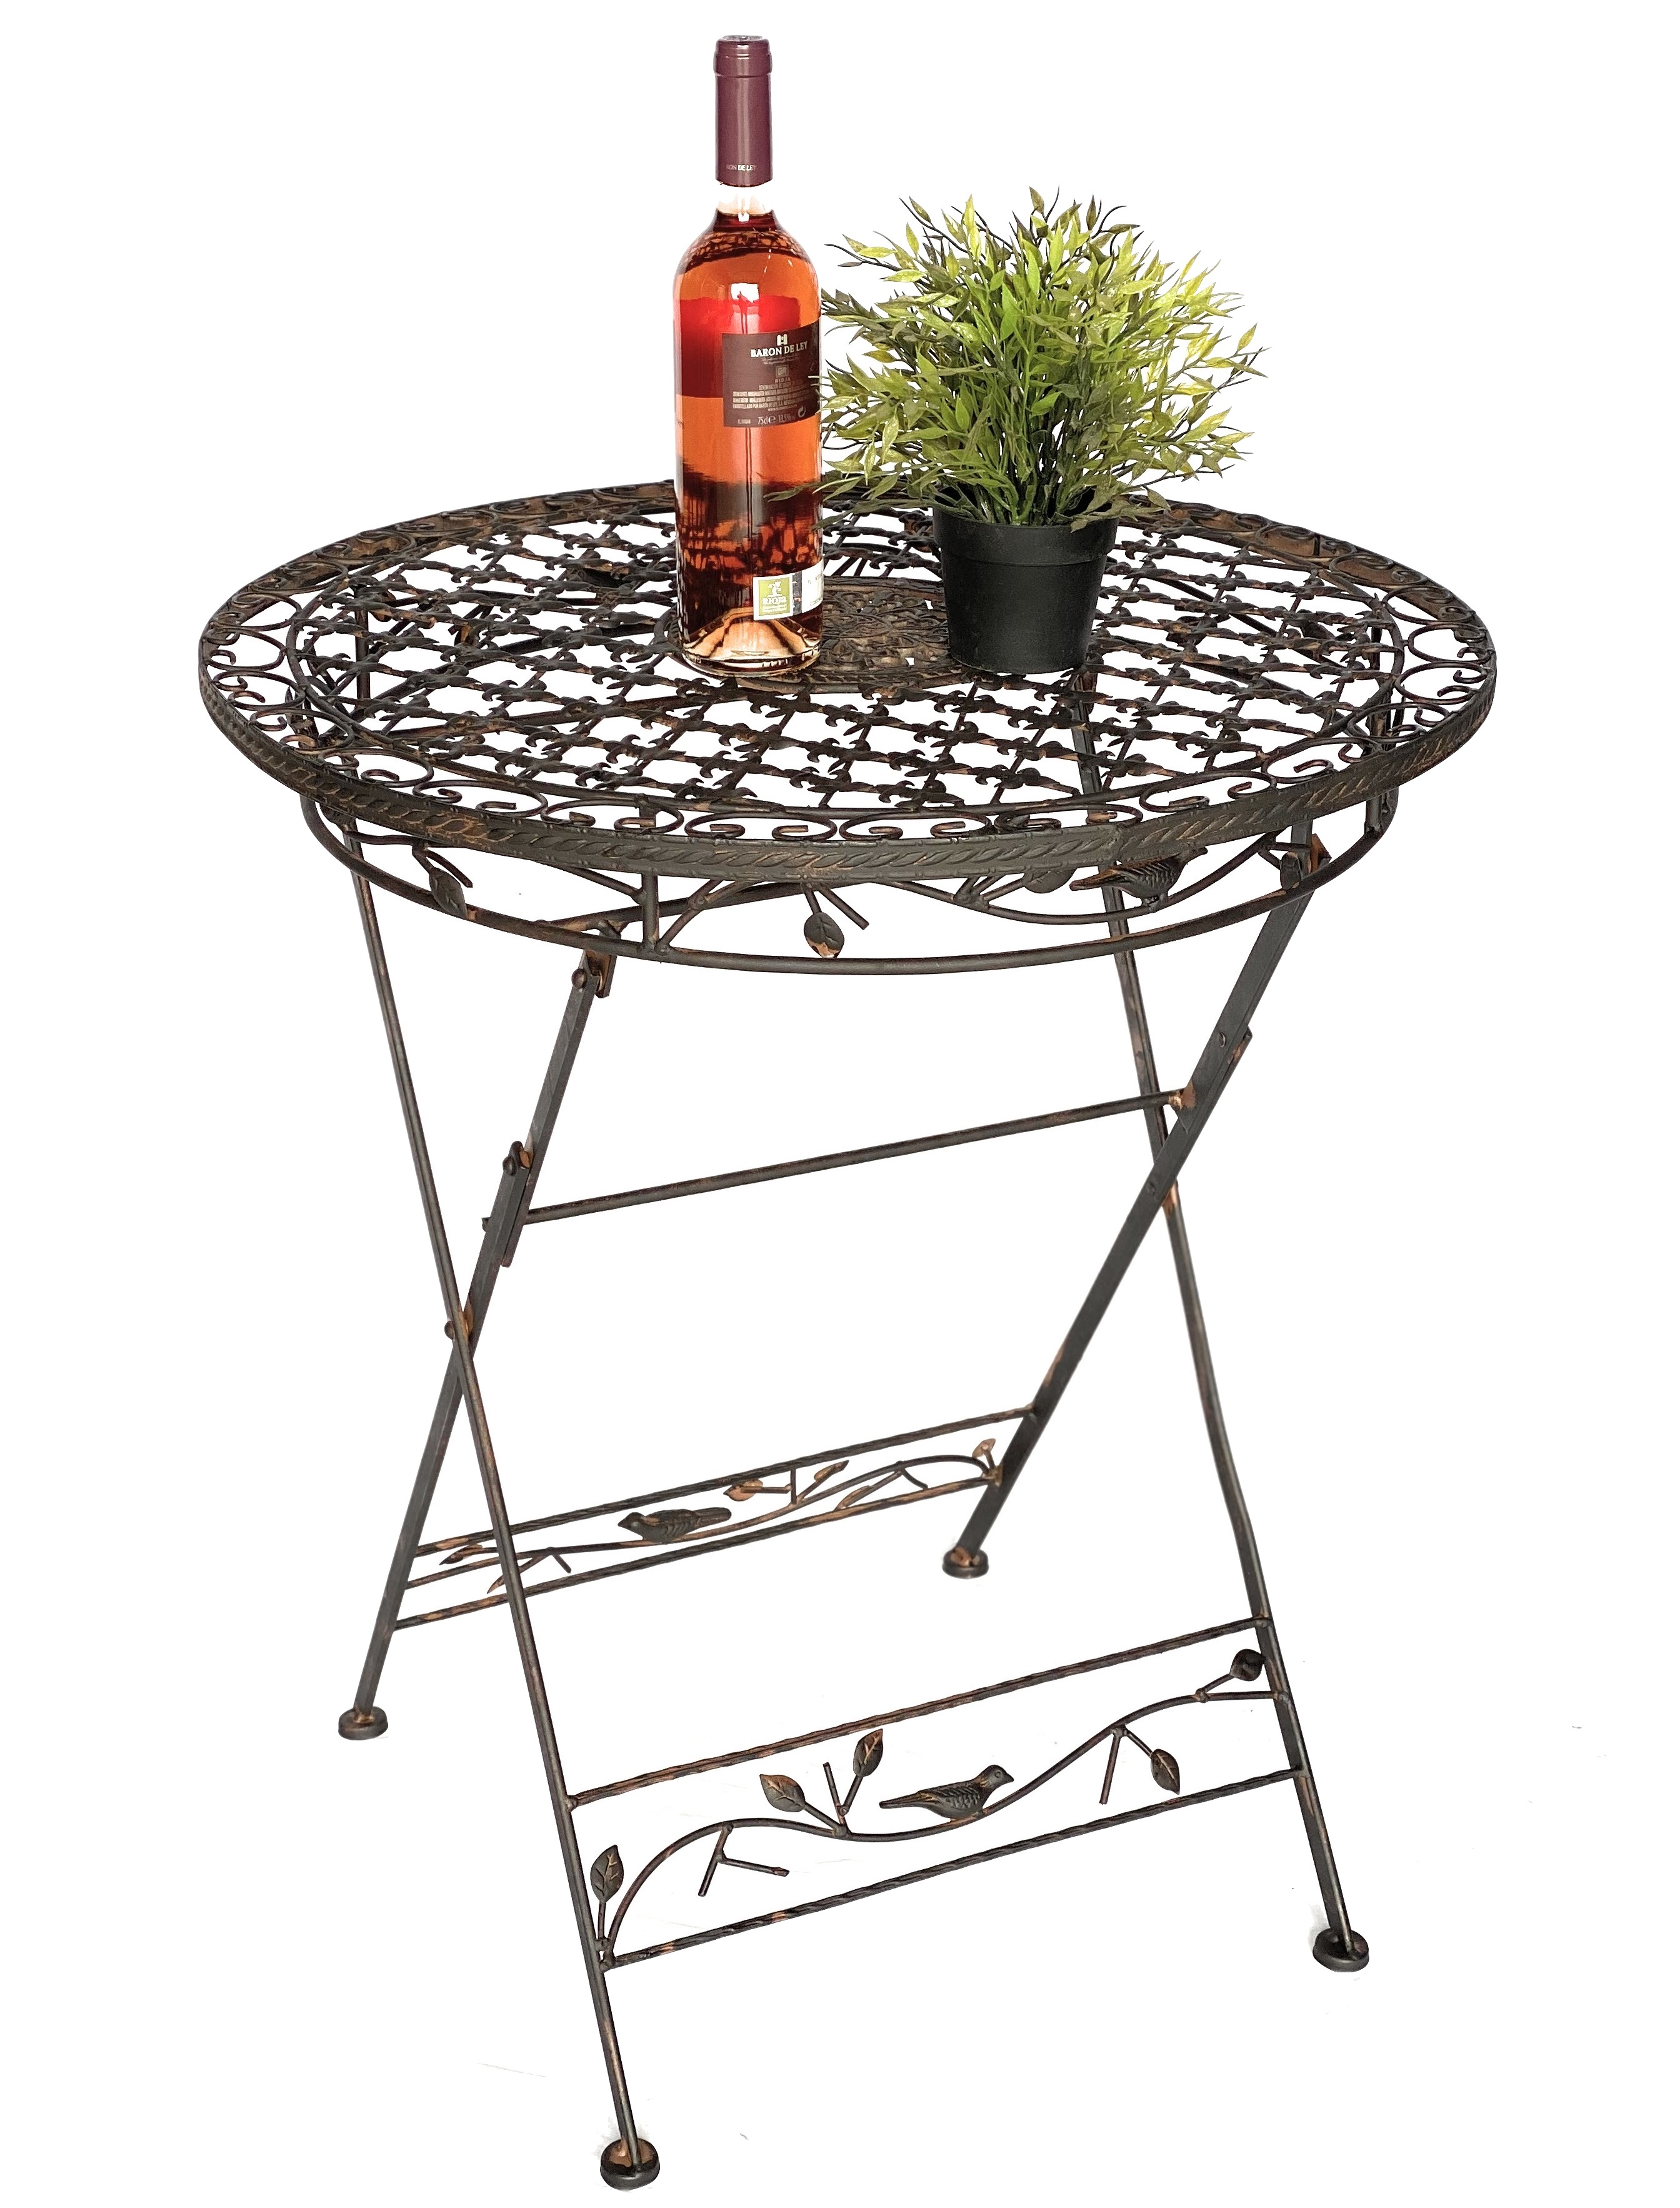 table Table pliante en métal 1850 fer forgé table de jardin table en ...